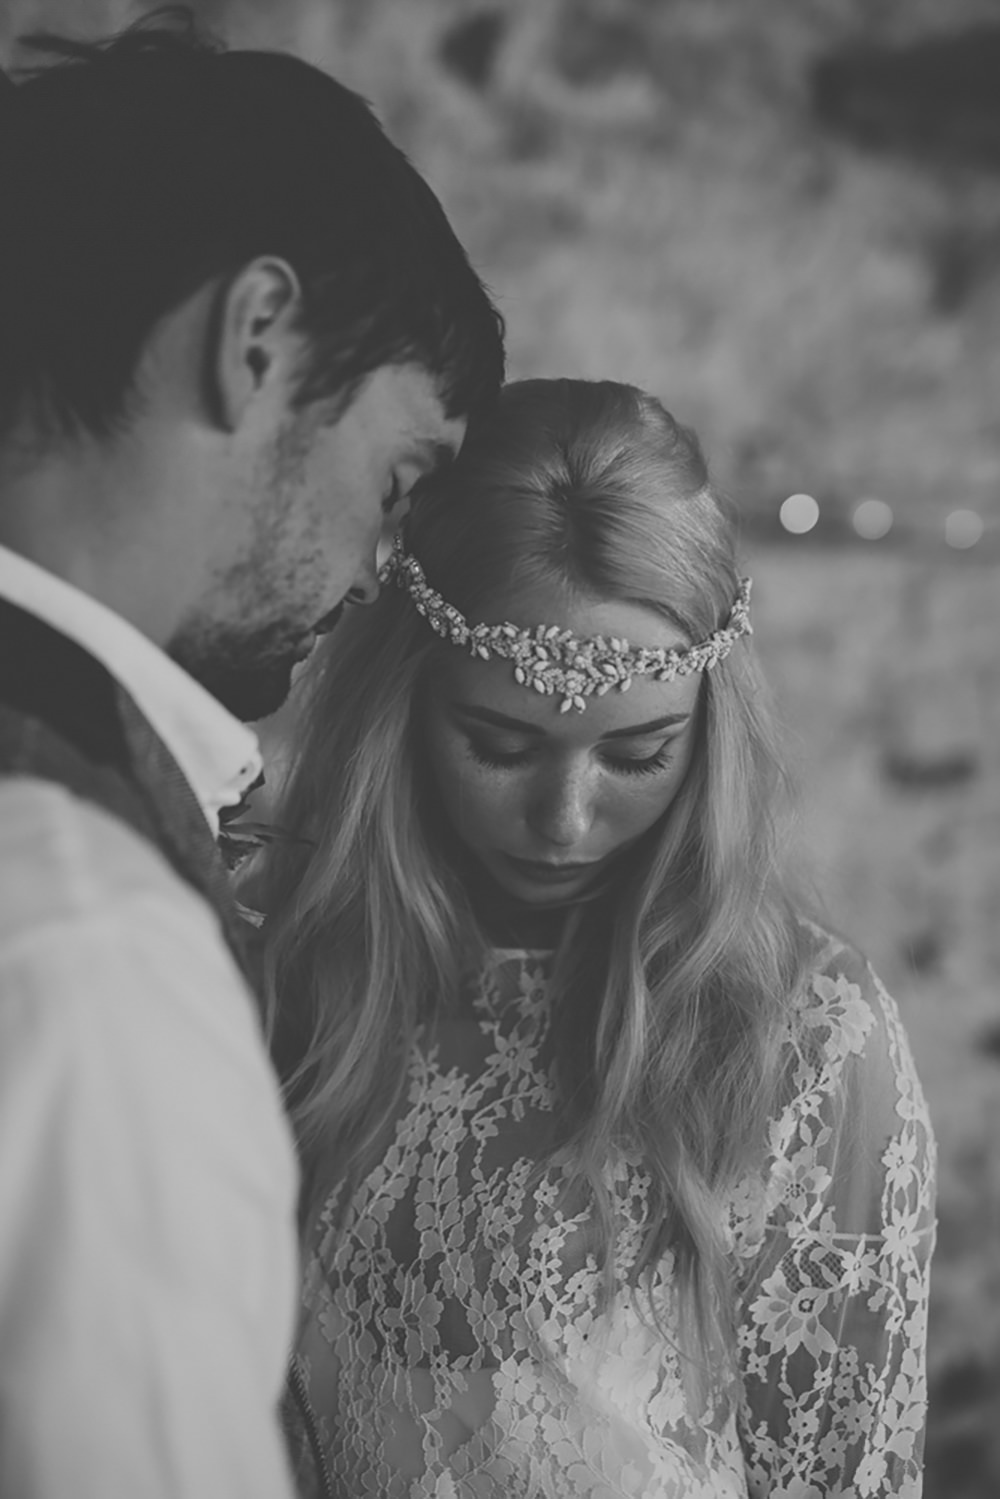 Bride Bridal Accessory Hair Headdress Forehead Bohemian Free Spirited Wedding Ideas Woodland Lumiere Photographic